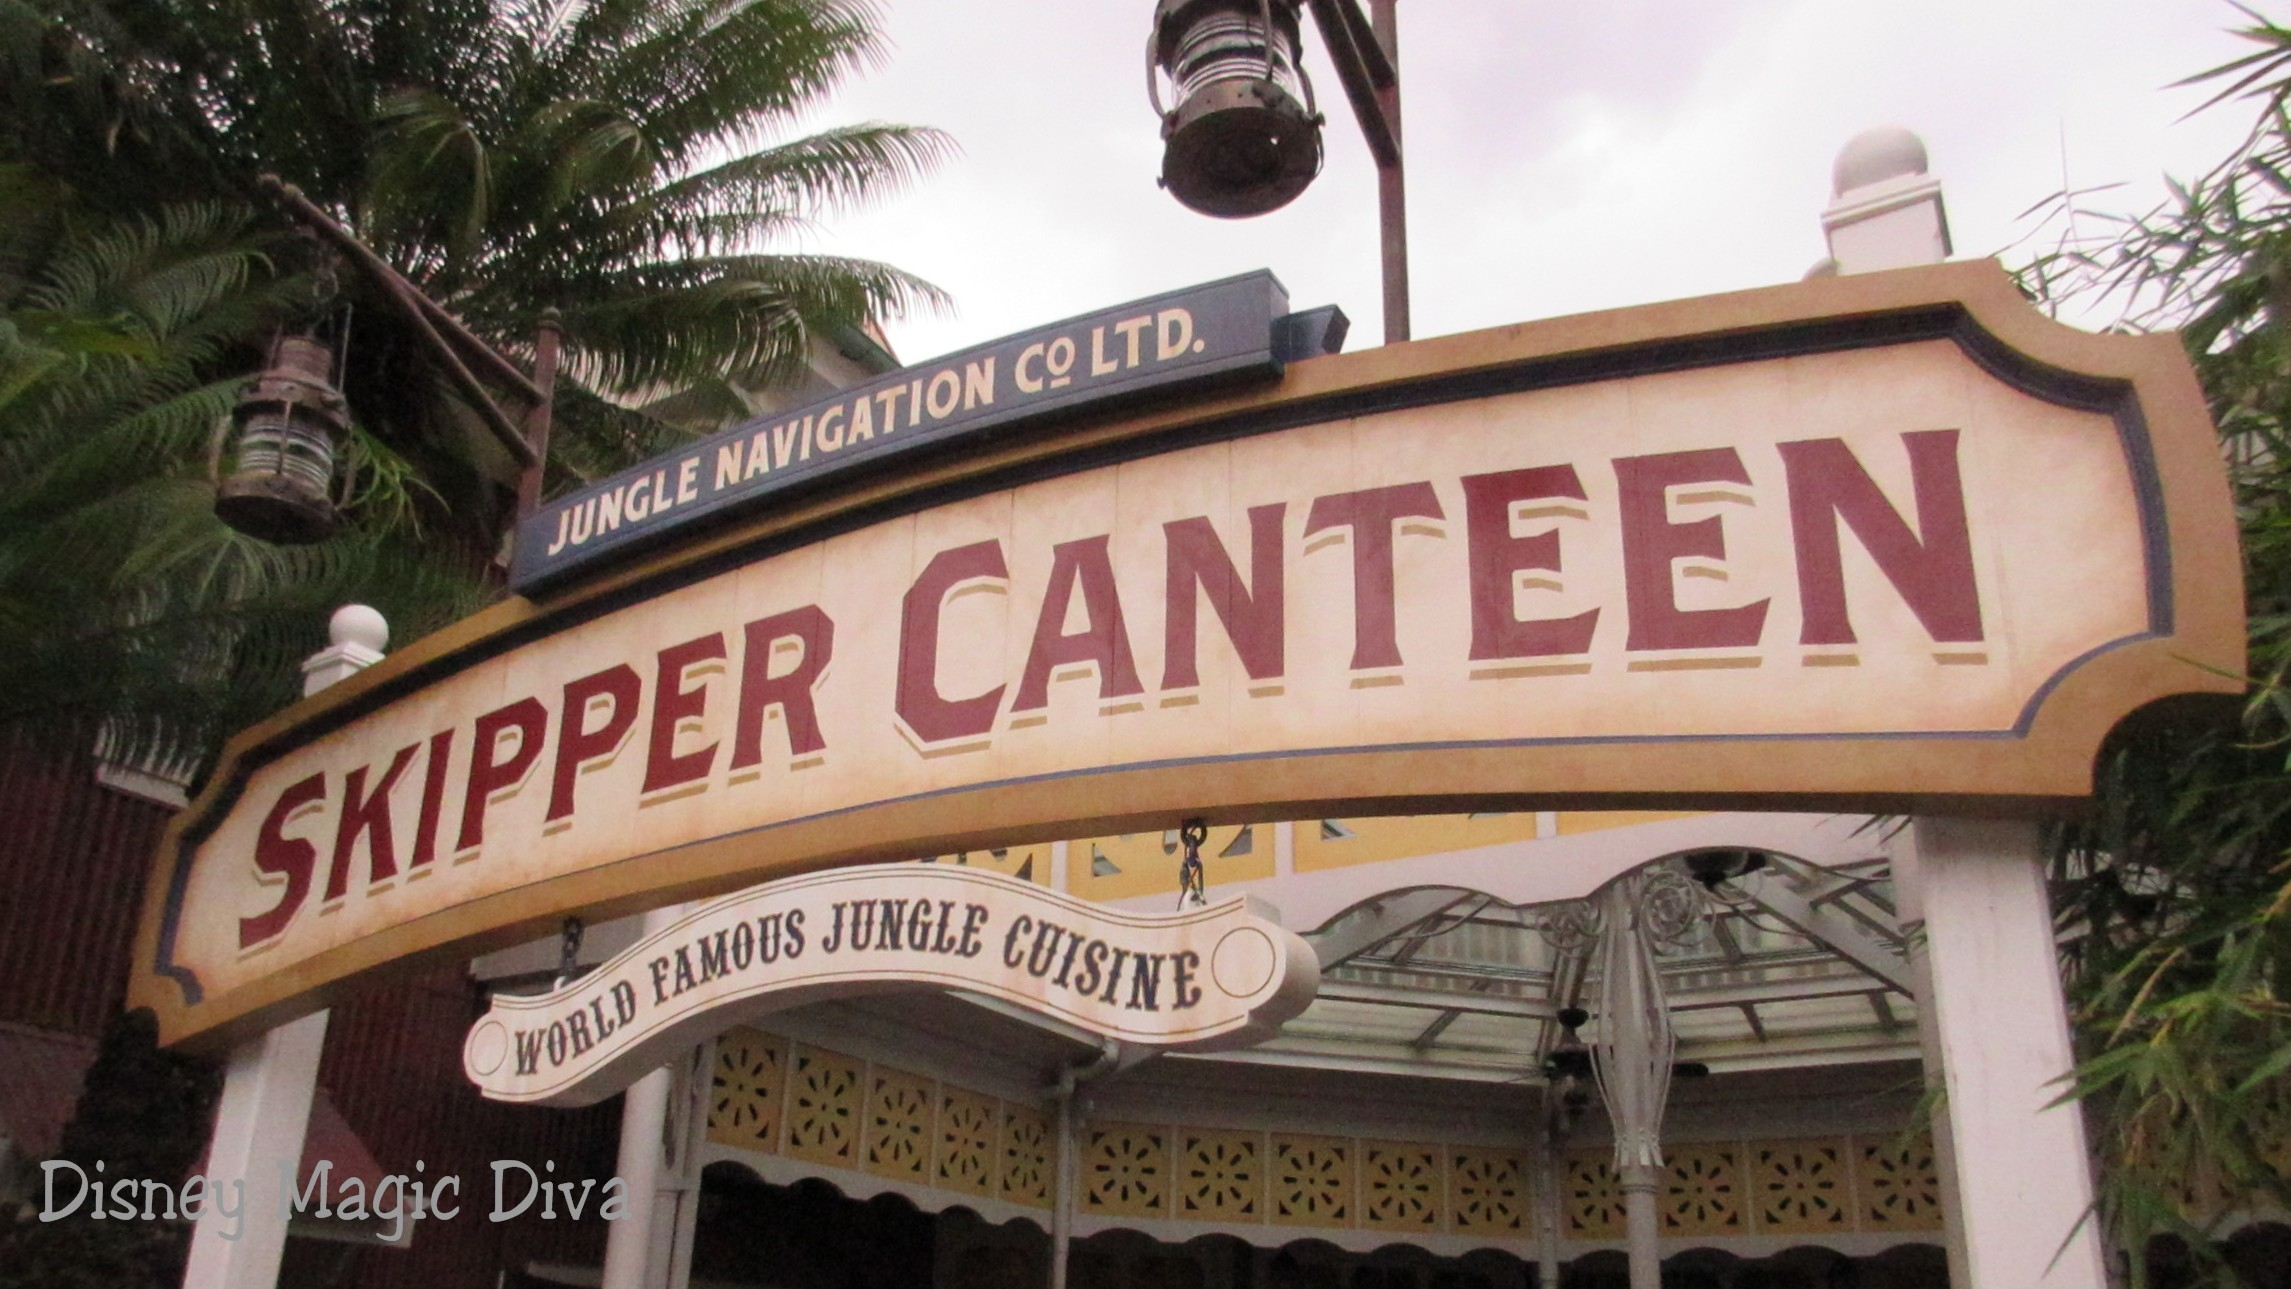 Don't Skip Skipper Canteen